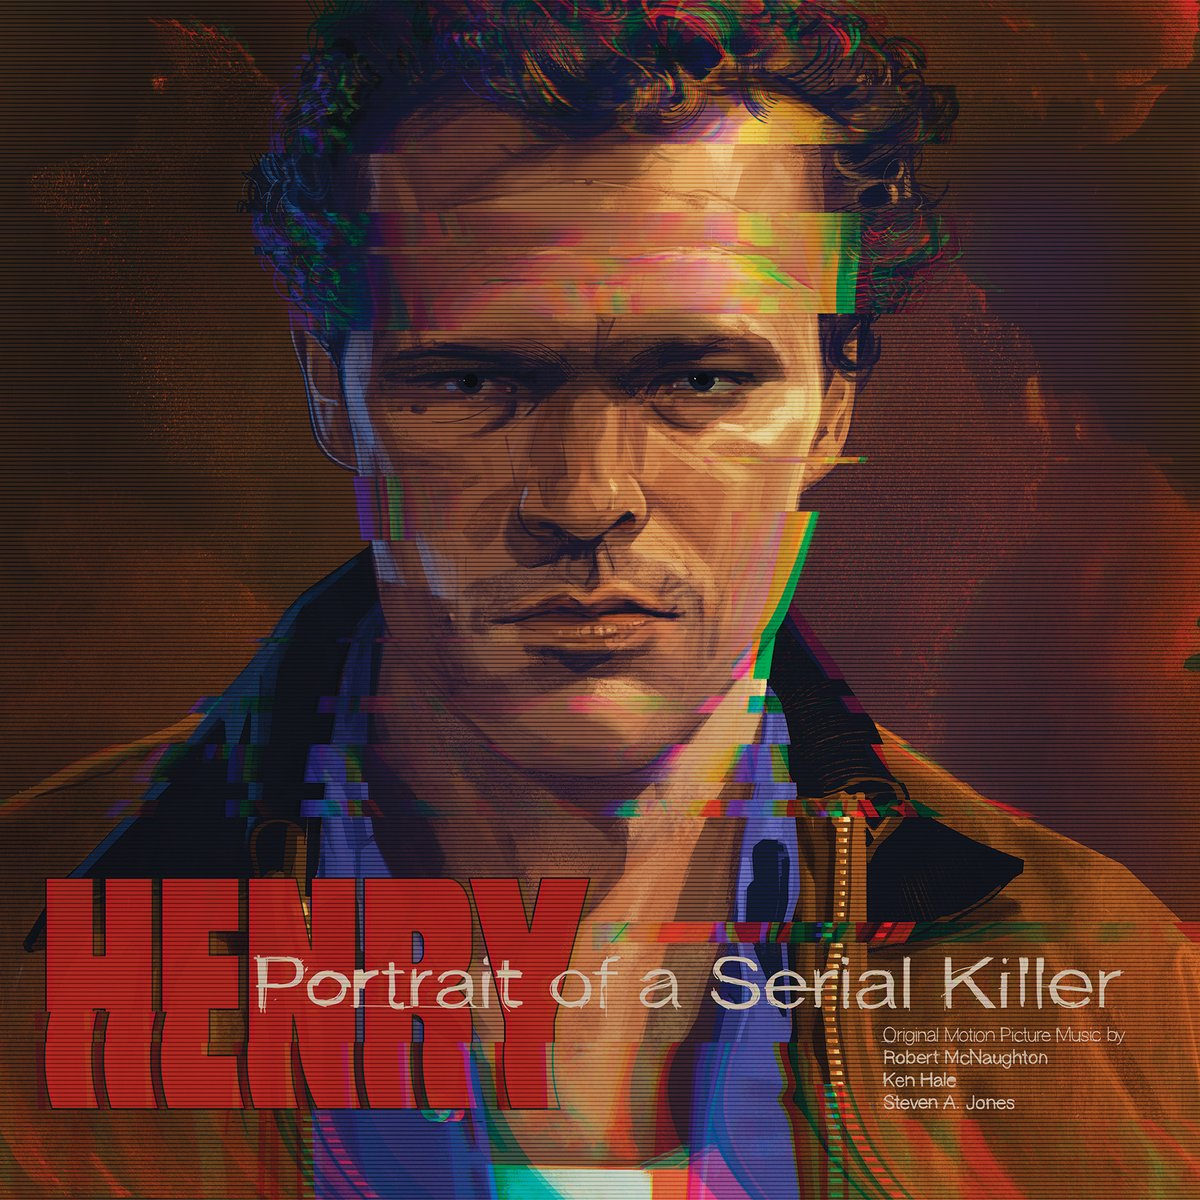 "HENRY: PORTRAIT OF A SERIAL KILLER Original Motion Picture Soundtrack is On Sale Now! Features new art by @TheRichKelly, 180 gram ""Crime Scene"" colored vinyl, deluxe packaging, and more!"